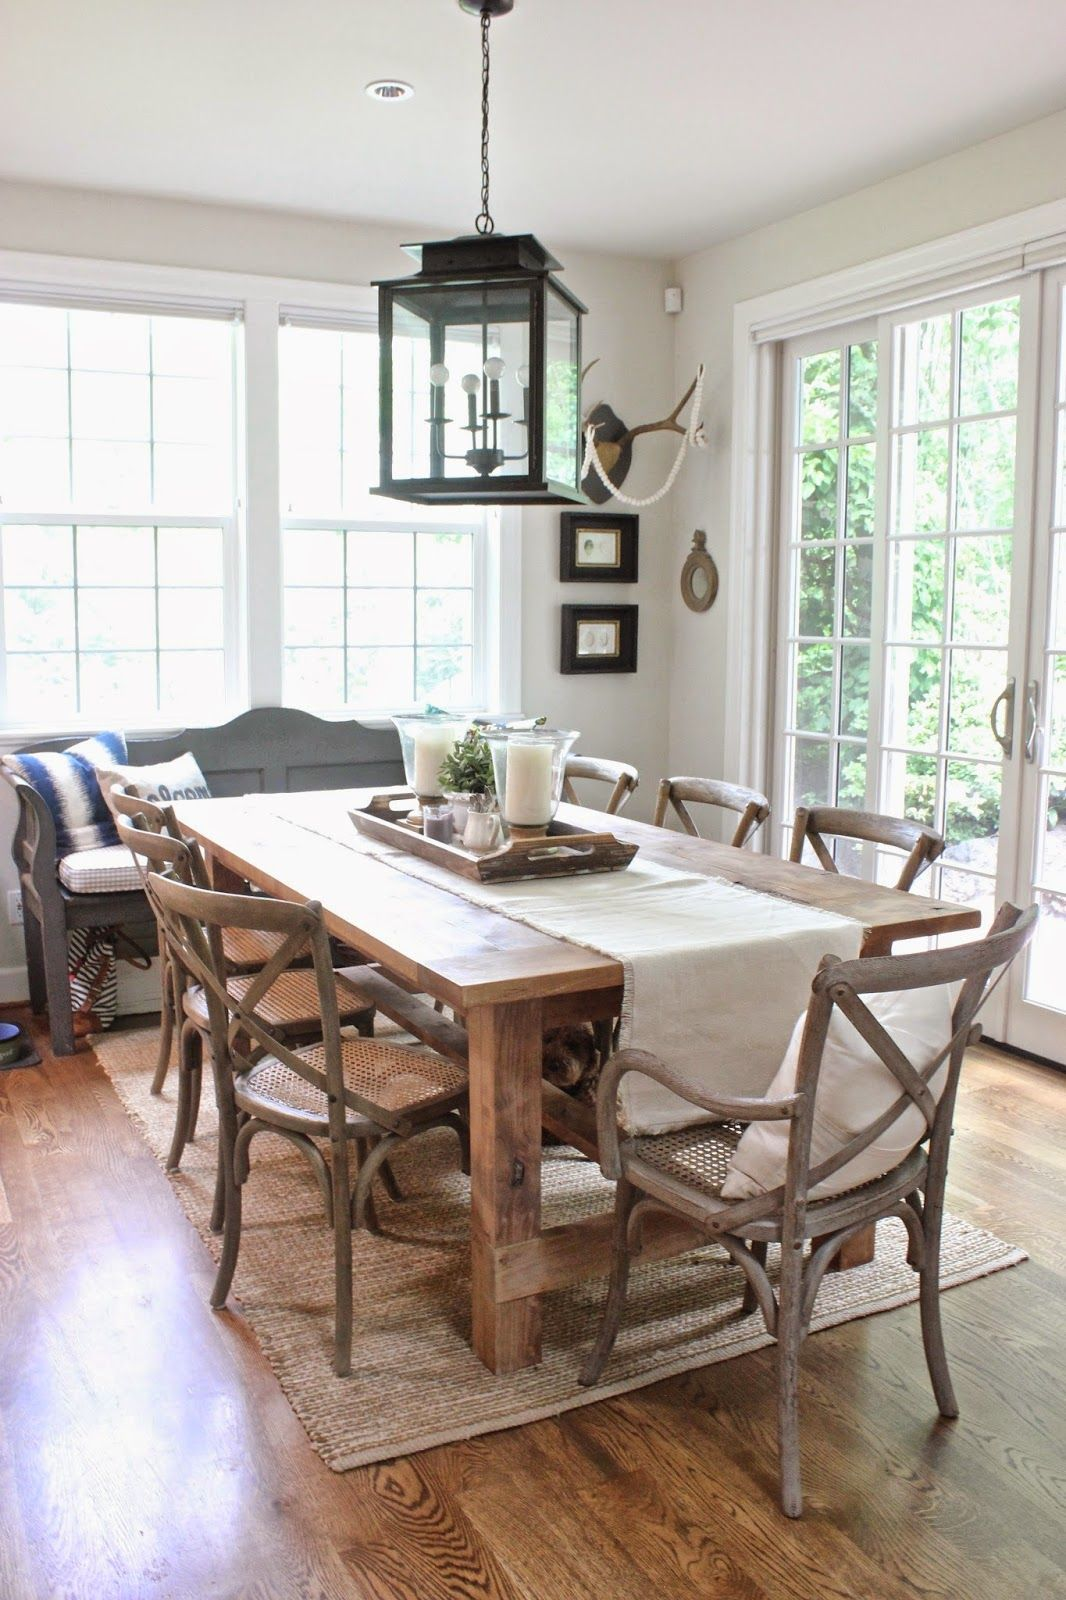 dining room theme ideas on forever cottage our home the spring version farmhouse dining room table dining room table centerpieces dining room decor rustic dining room table centerpieces